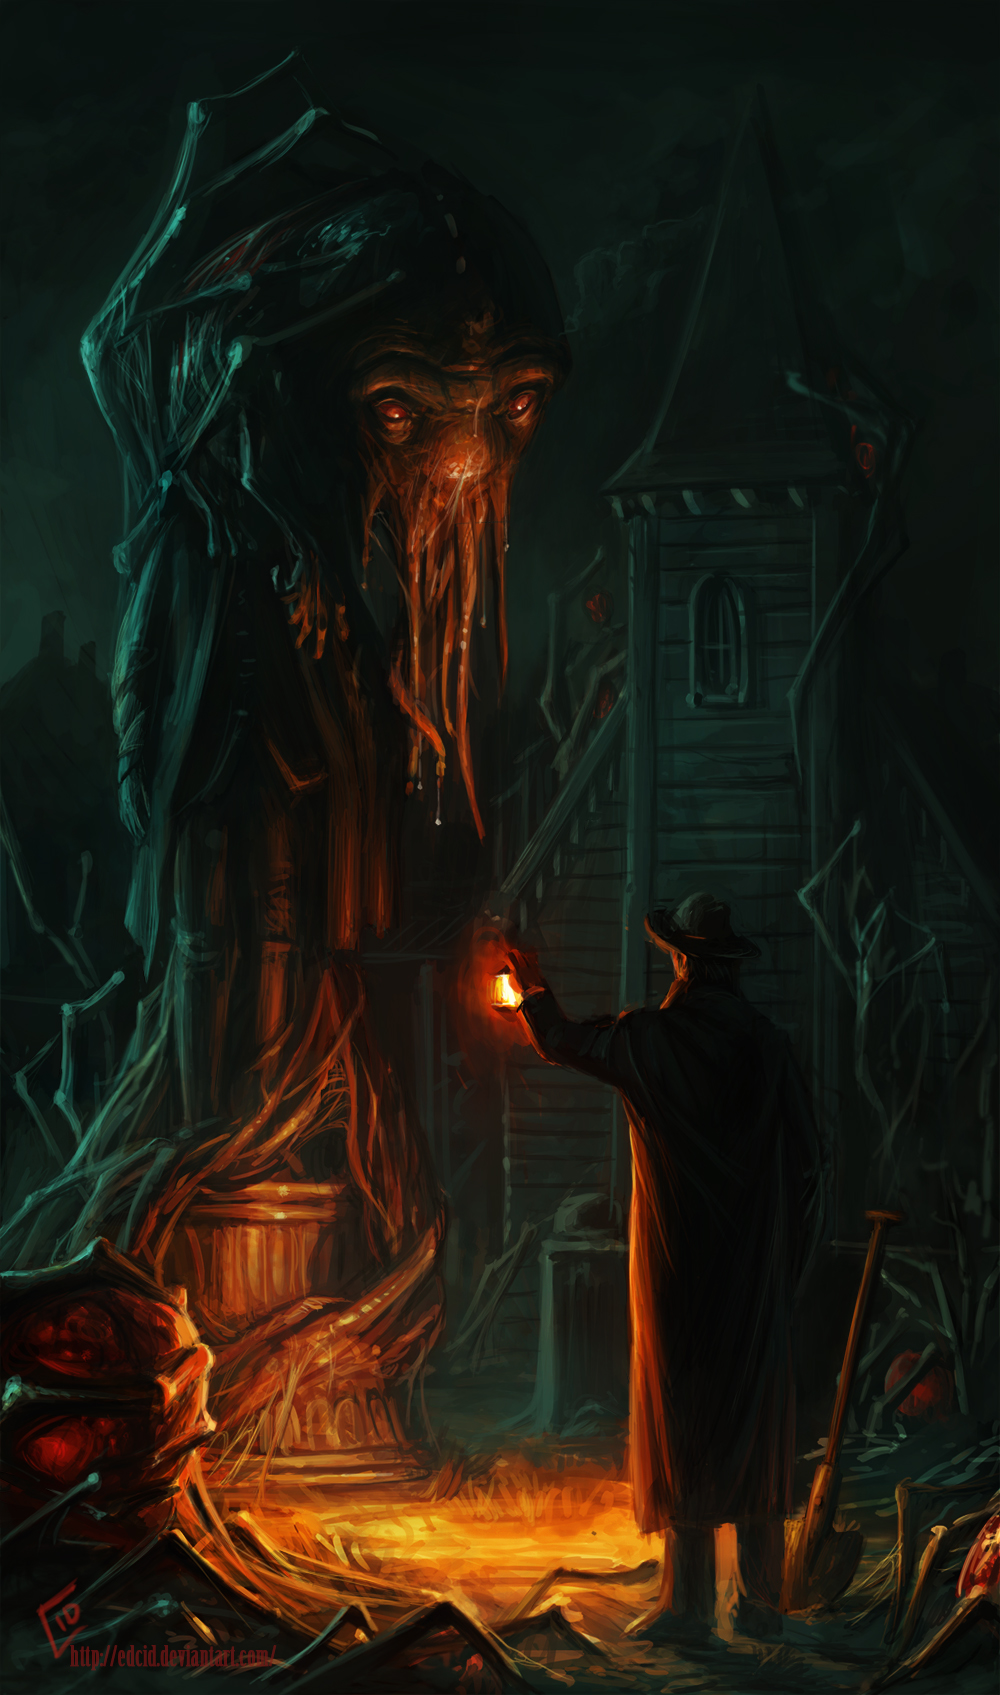 Cthulhu statue in front of a church